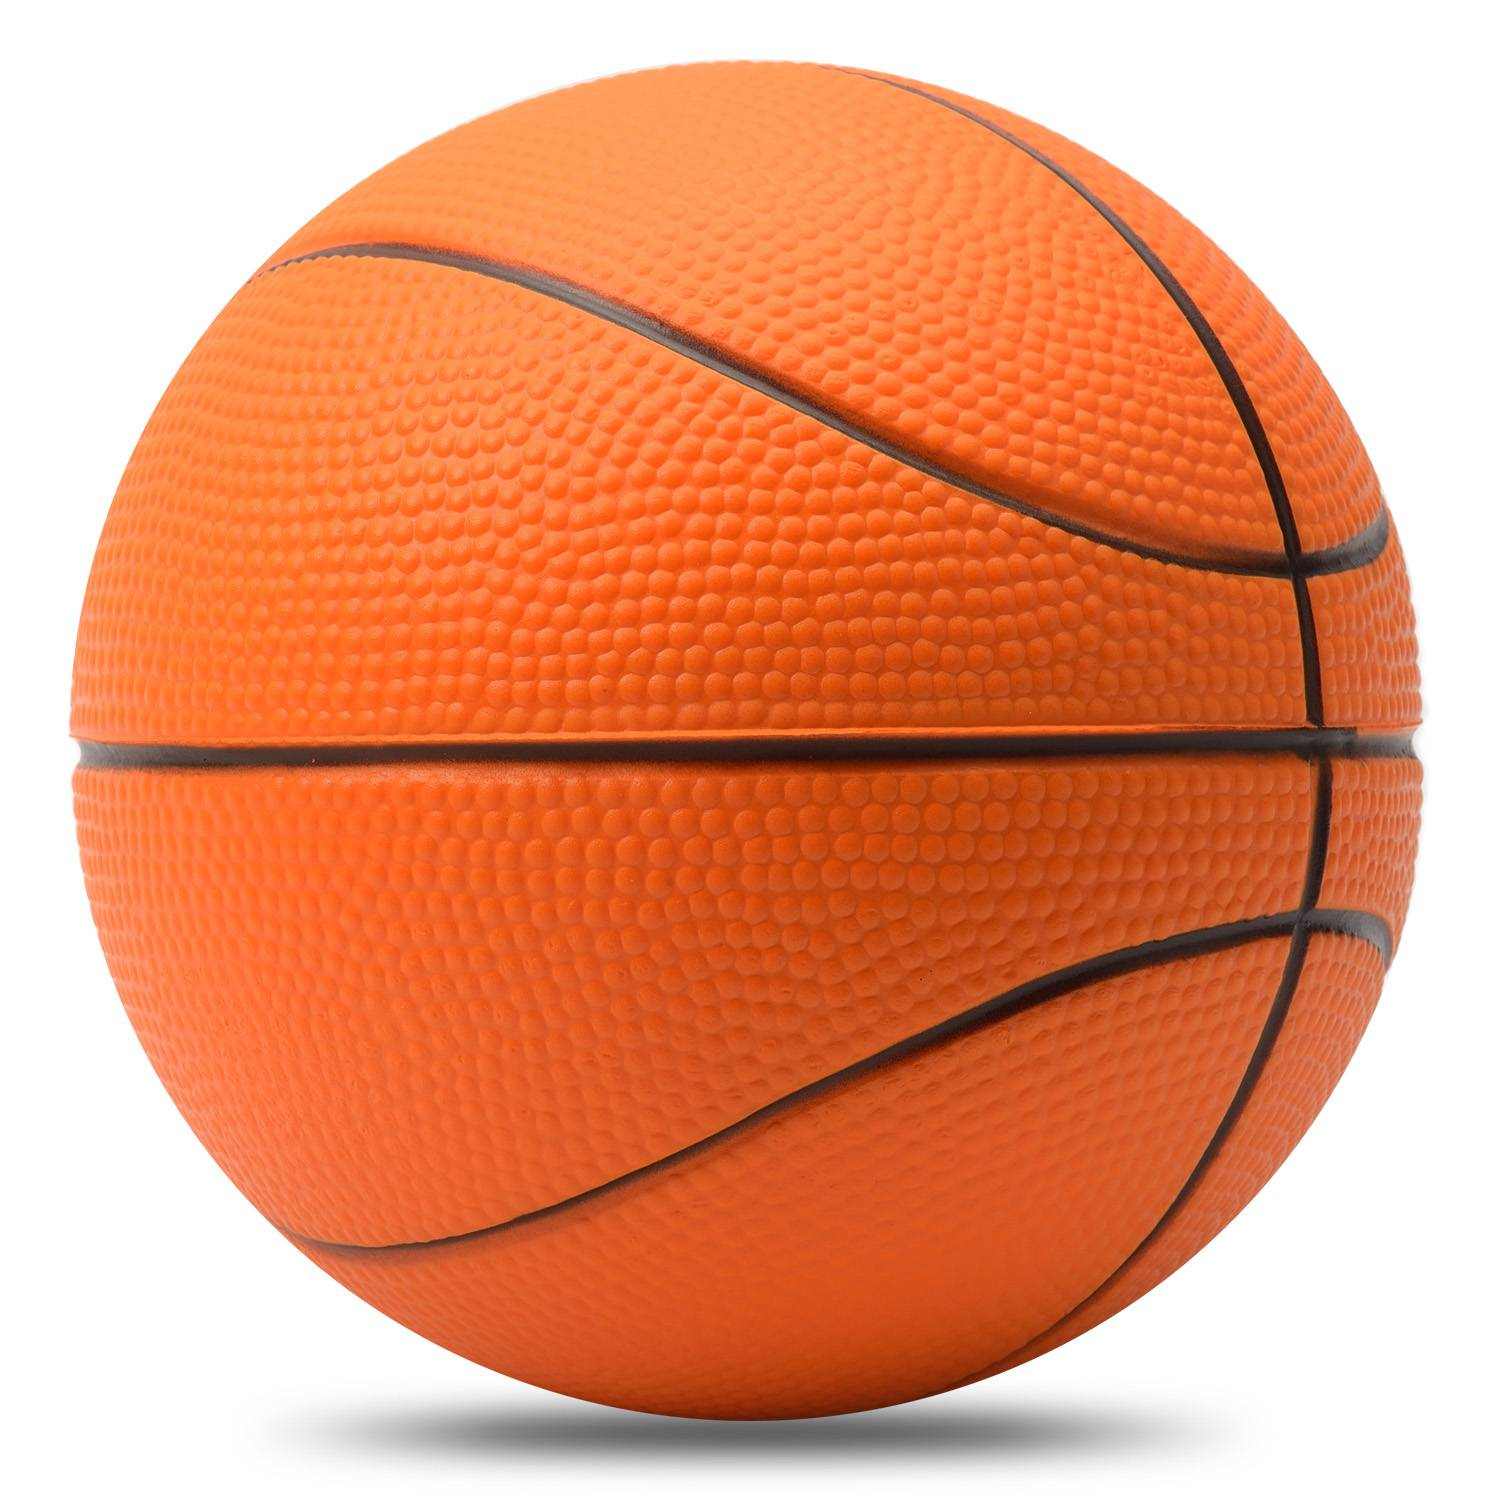 8inch/6inch/4 inch foam basketball